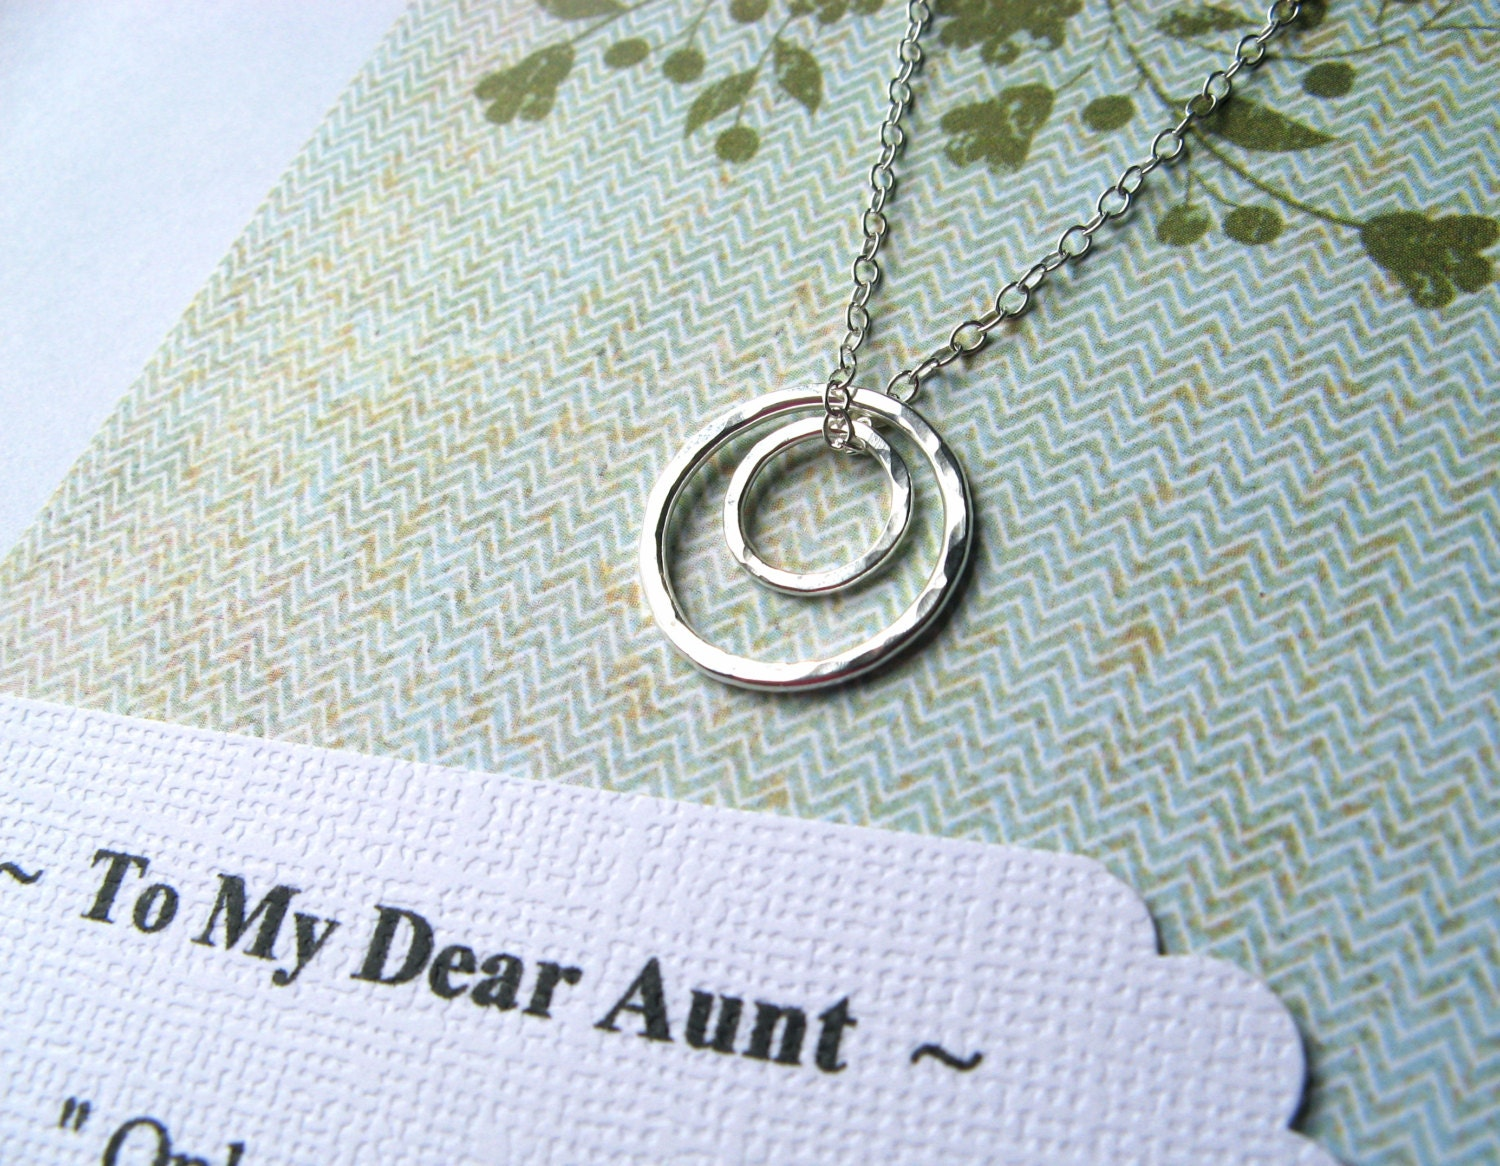 necklace fullxfull sister bea special anna necklaces stamped aunt niece collections from nephew il designs hand